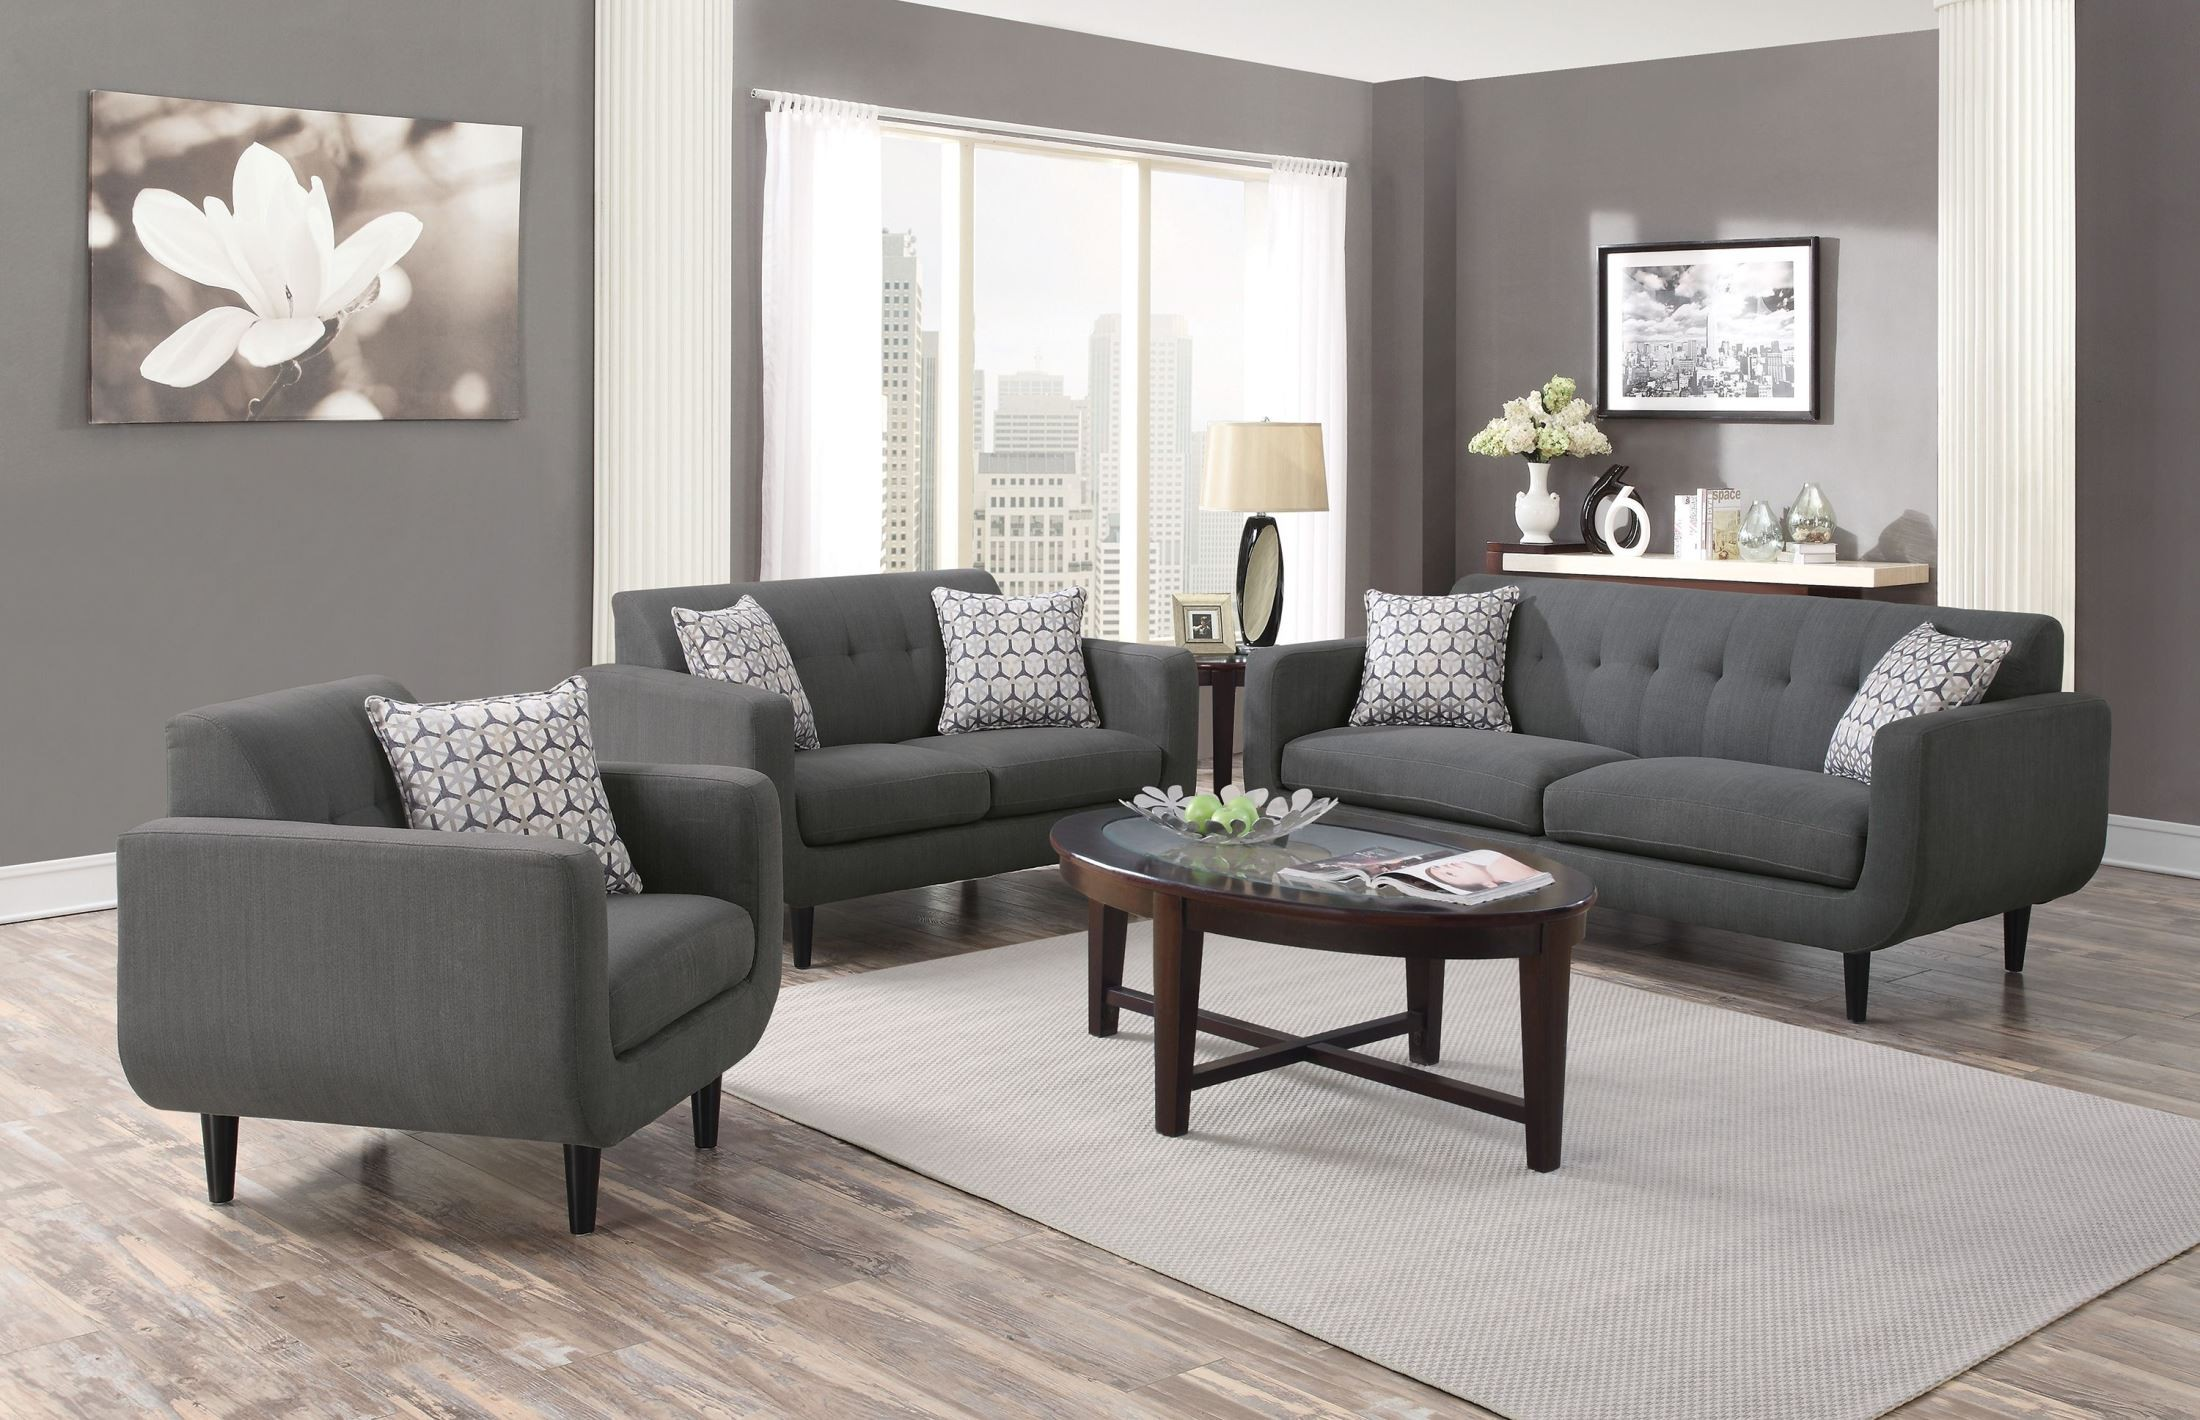 Stansall grey living room set 505201 coaster for Living room furniture sets